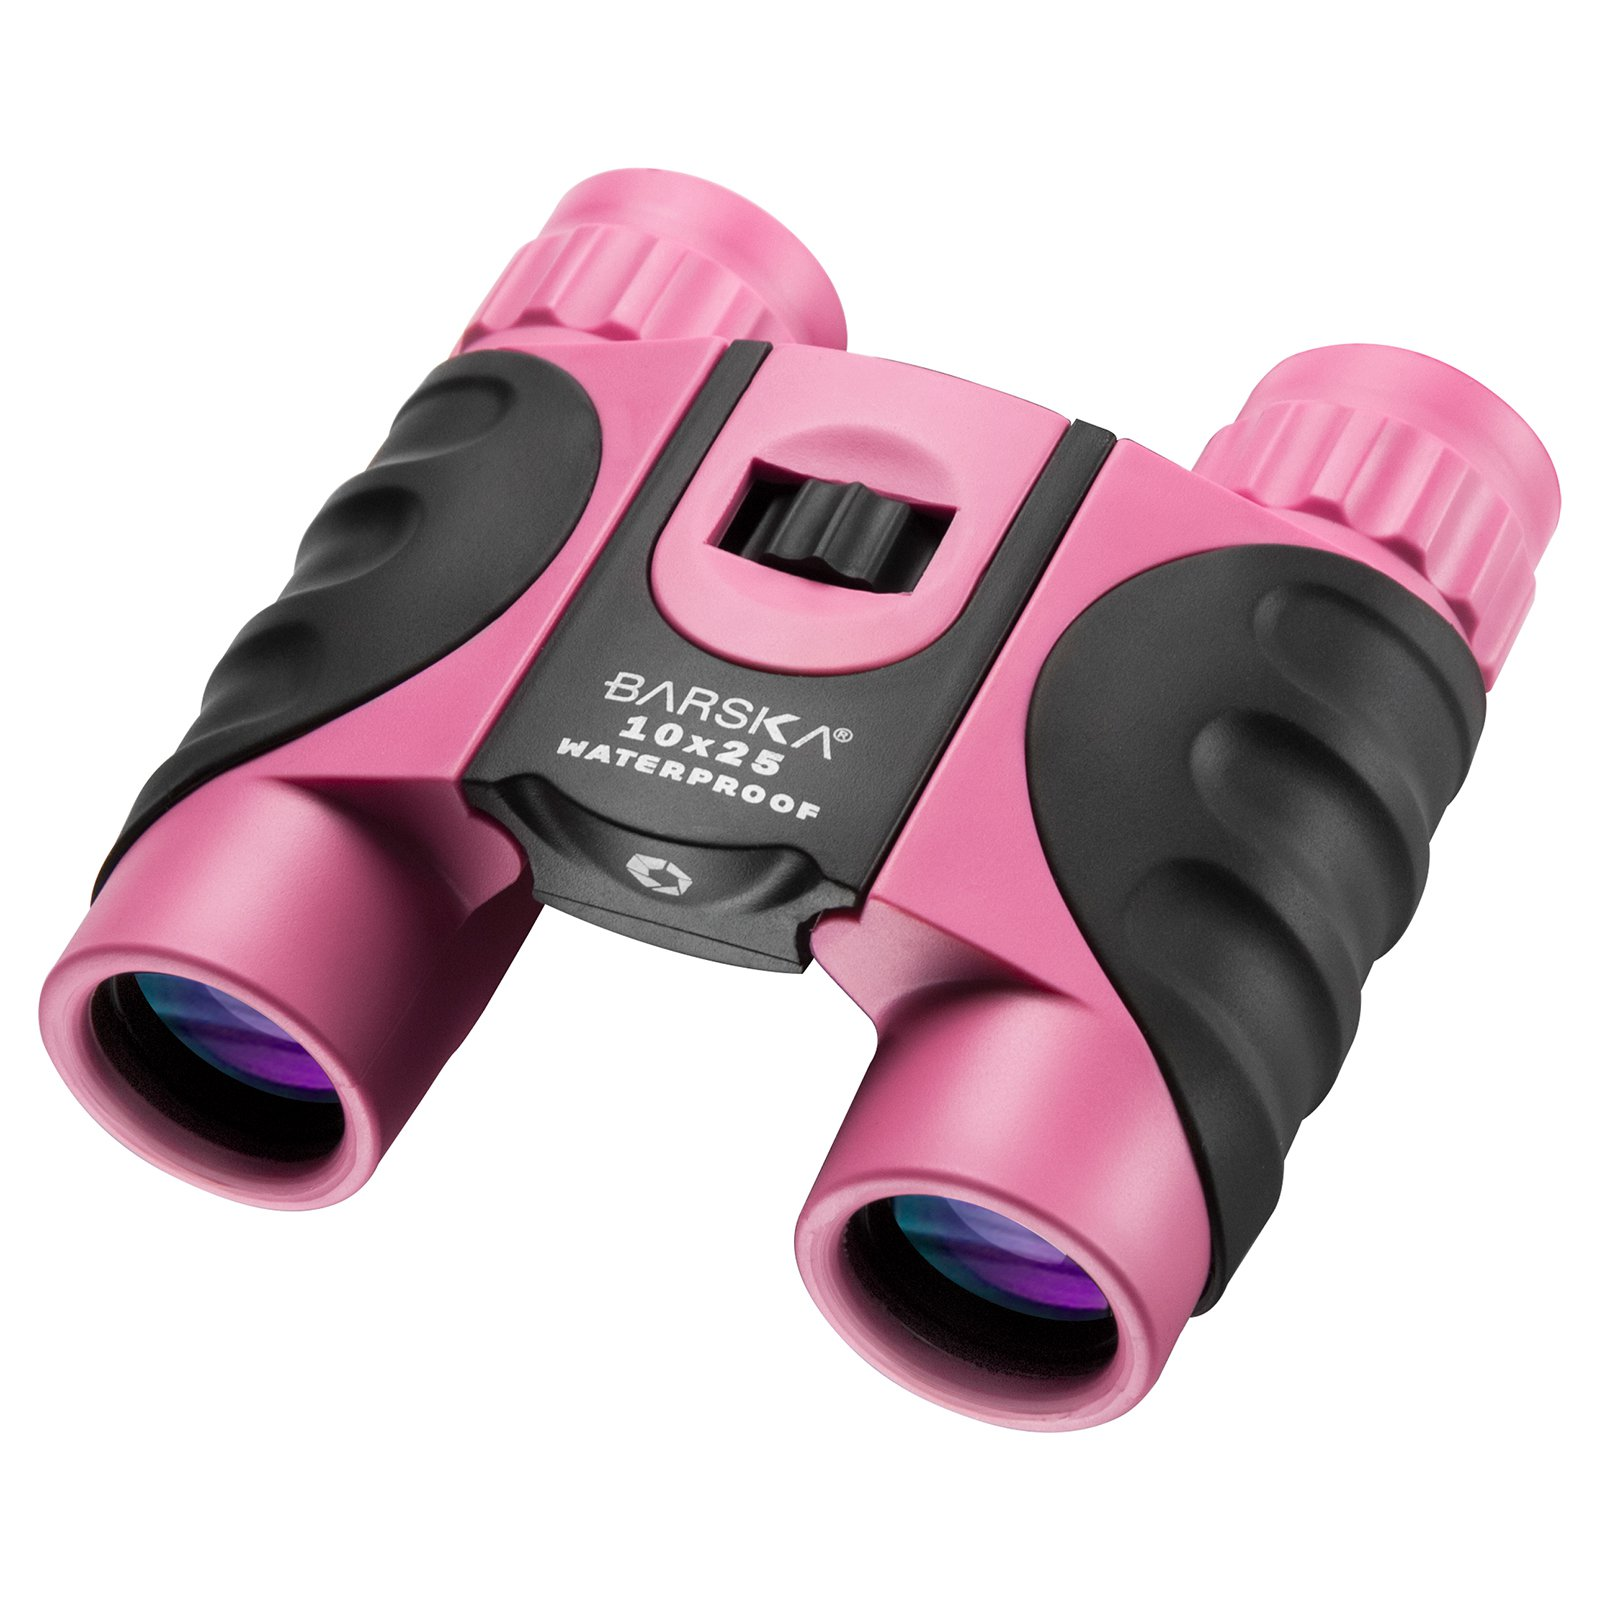 Barska Optics Colorado 10x25mm Binoculars, Pink